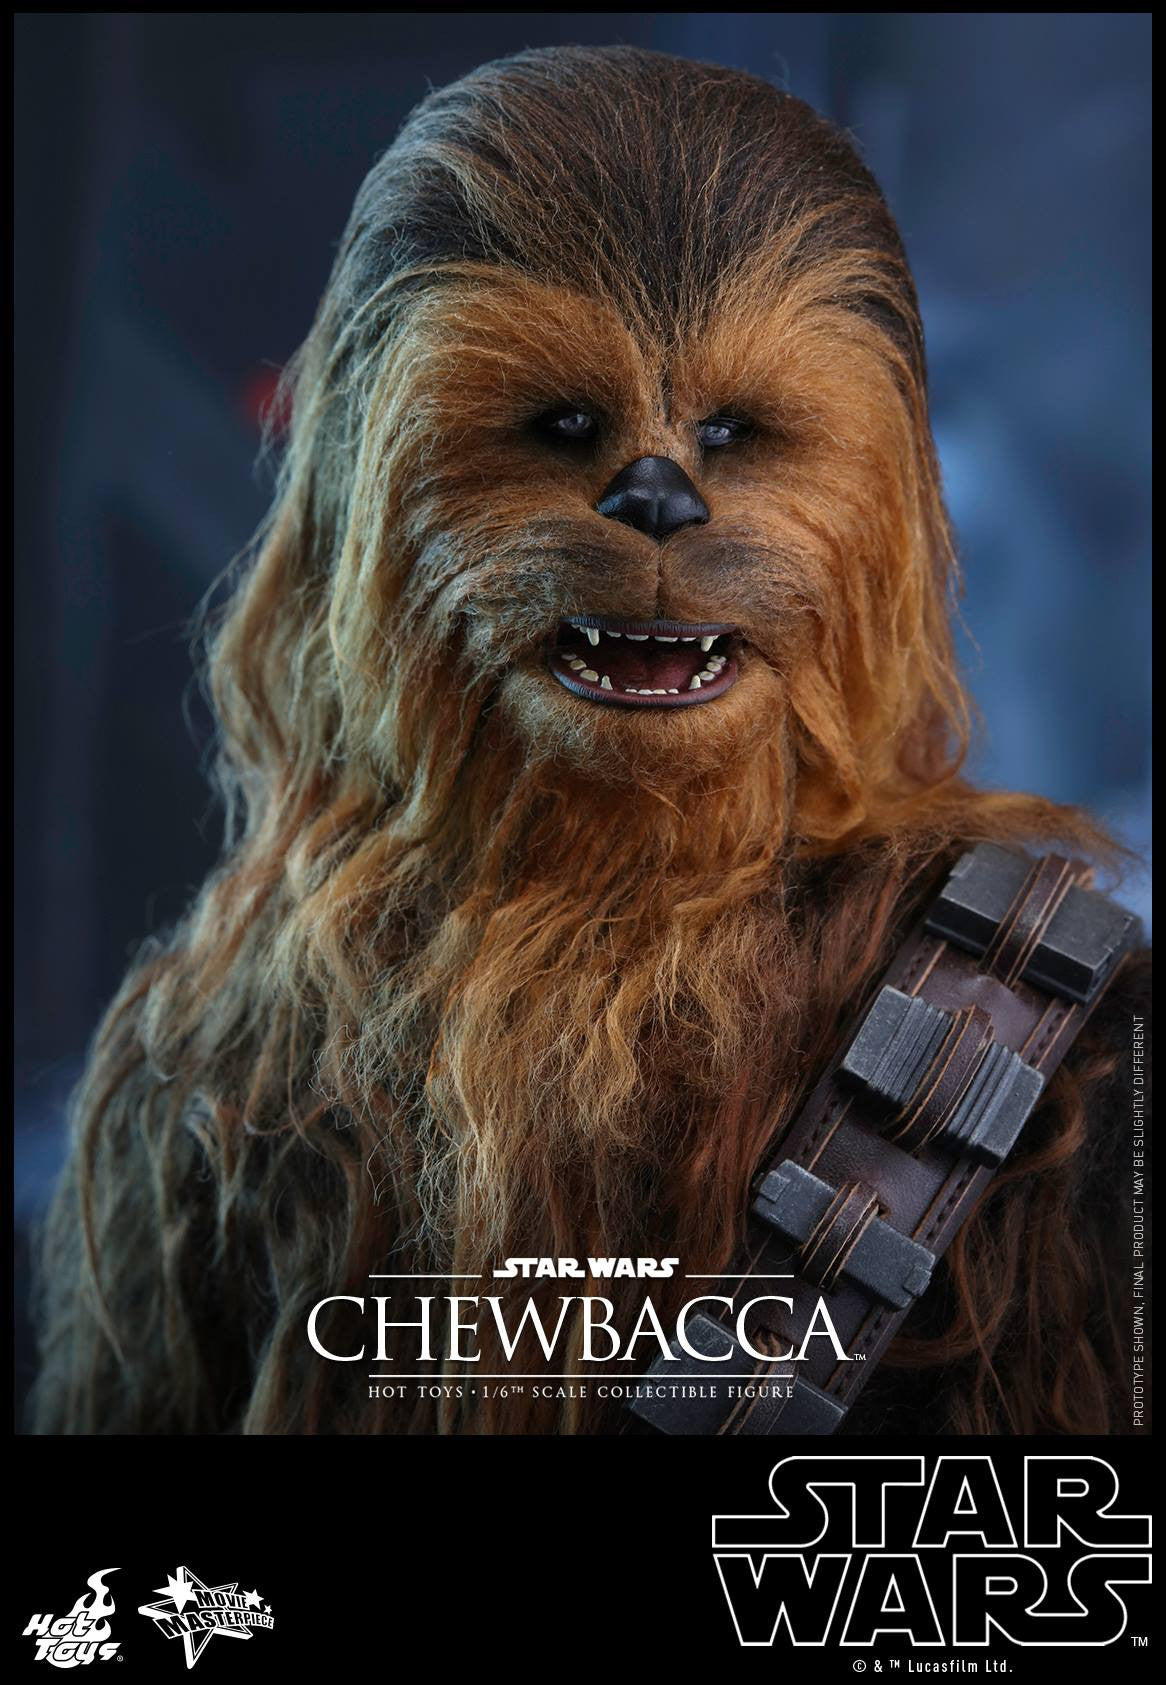 Hot Toys - MMS375 - Star Wars: The Force Awakens - Chewbacca - Marvelous Toys - 5